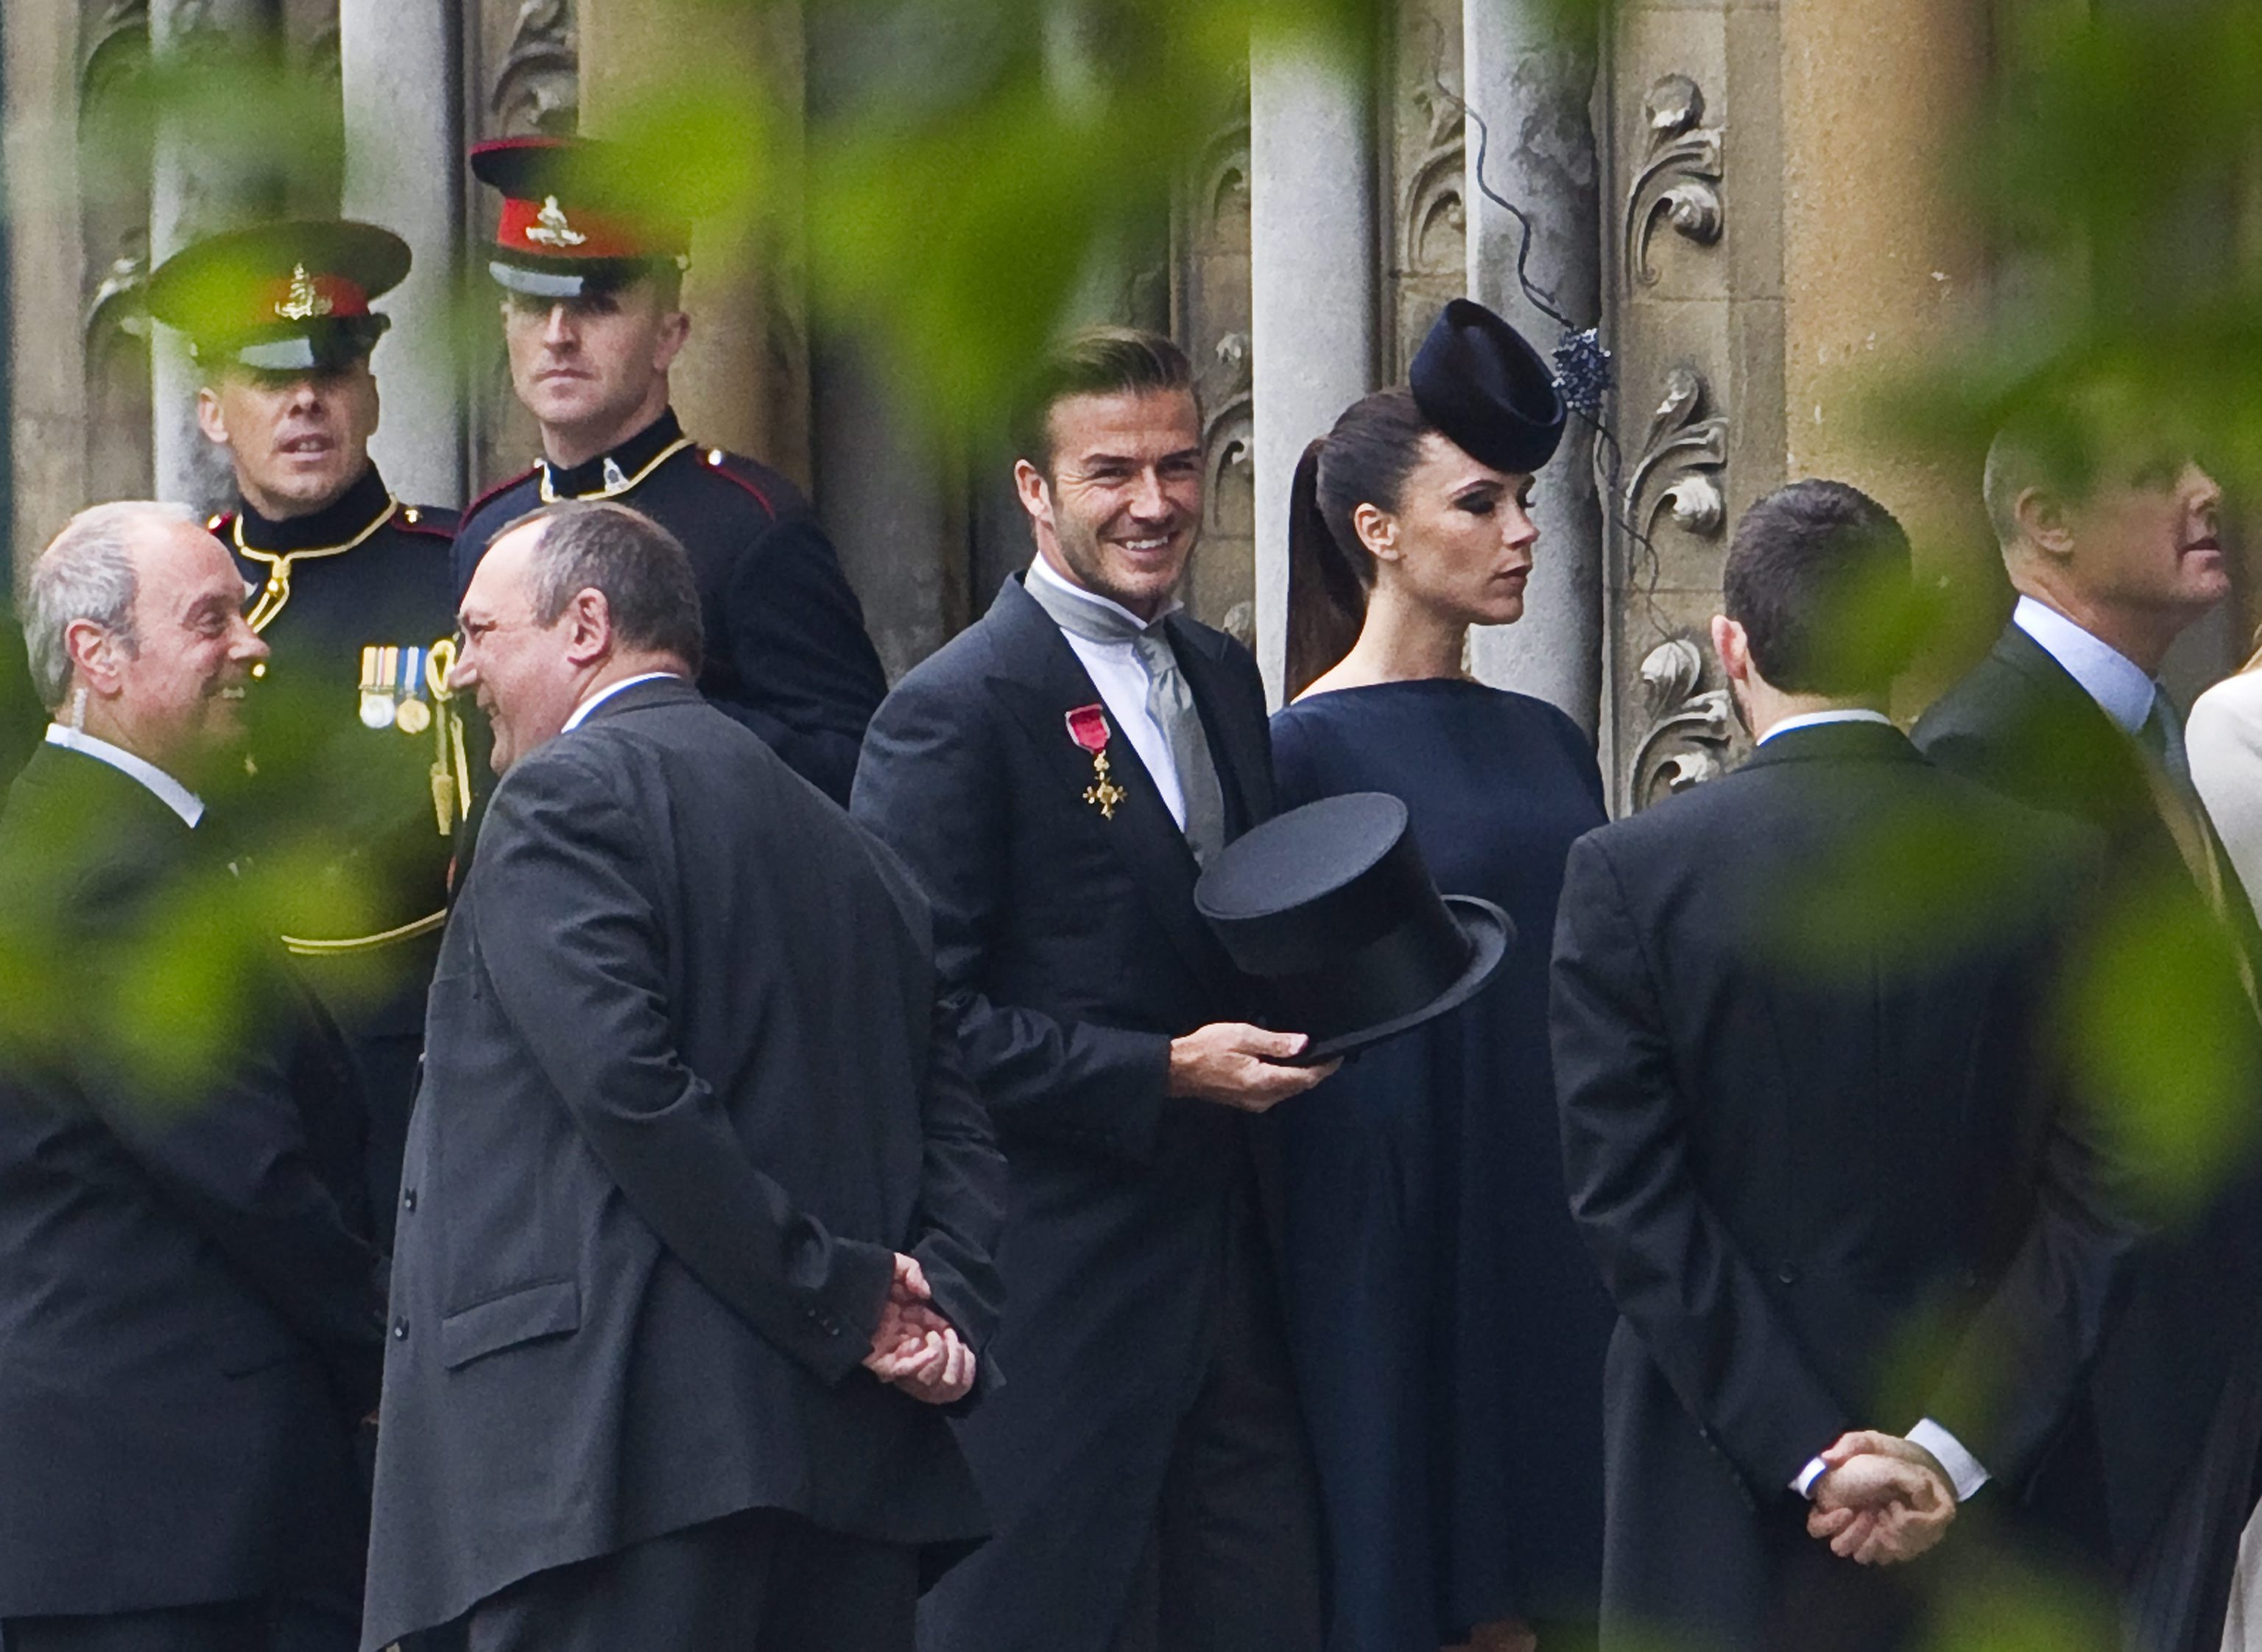 Wedding of Prince William and Catherine Middleton Marriage Service